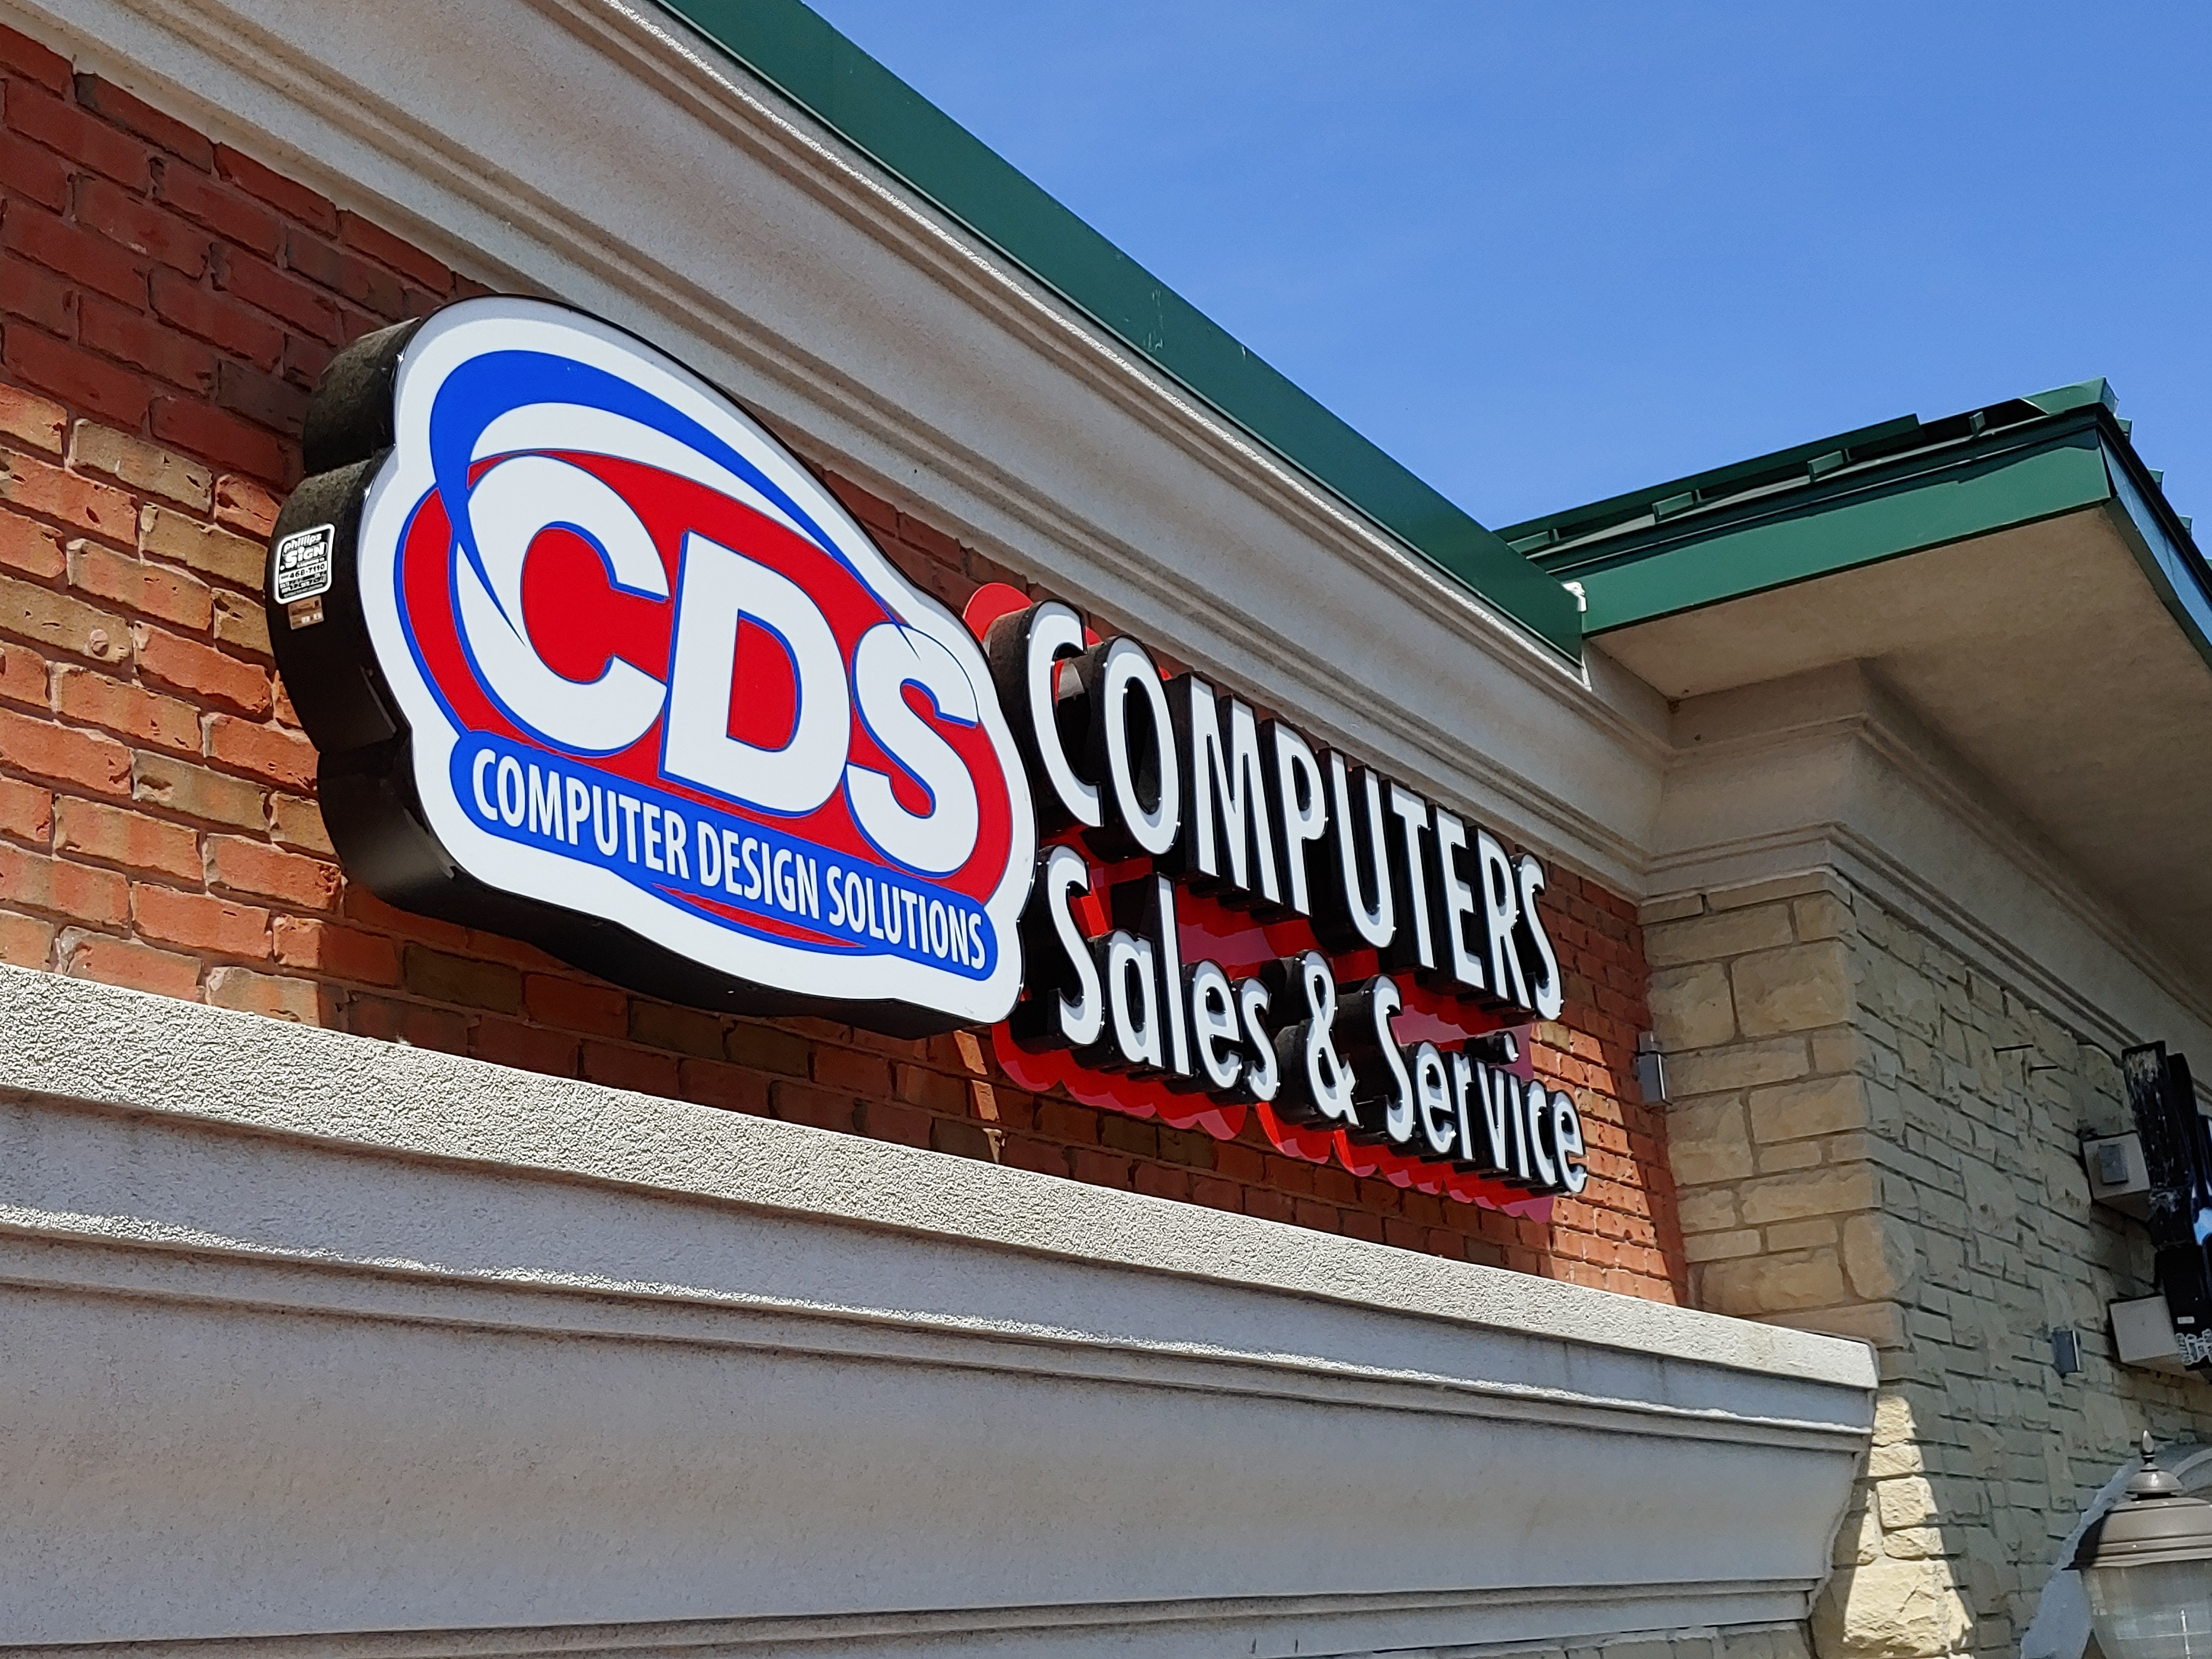 CDS Computers - Shelby Township